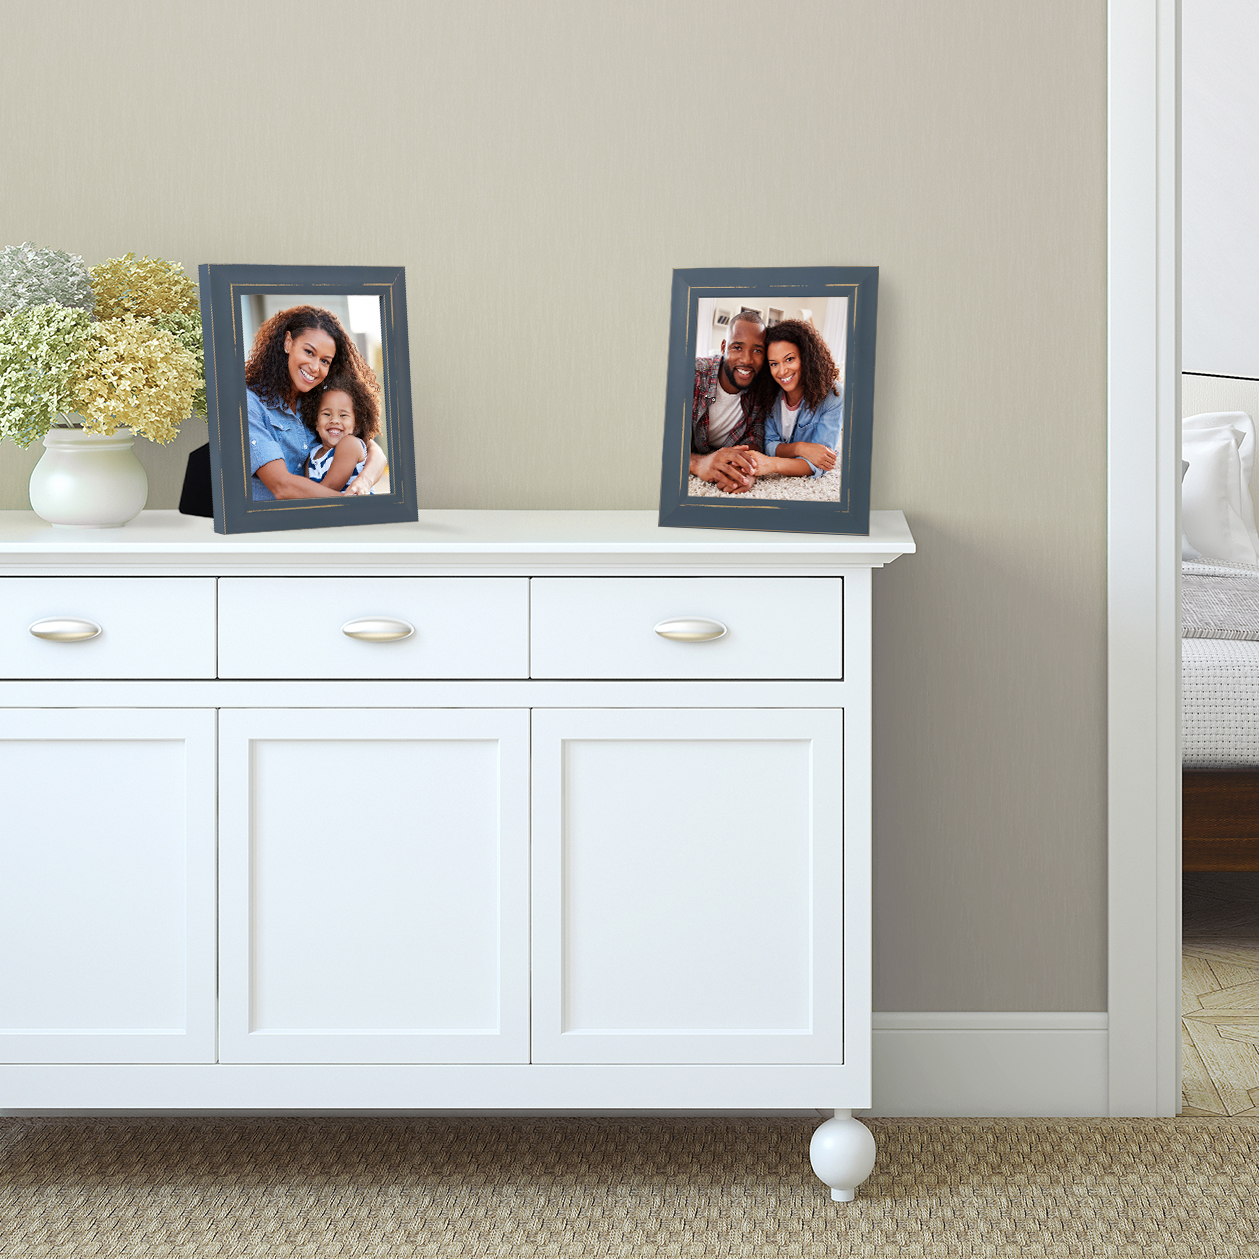 miniature 41 - Americanflat Picture Frame 4x6 5x7 8x10 (2) Pack Rustic Wood Wall or Tabletop